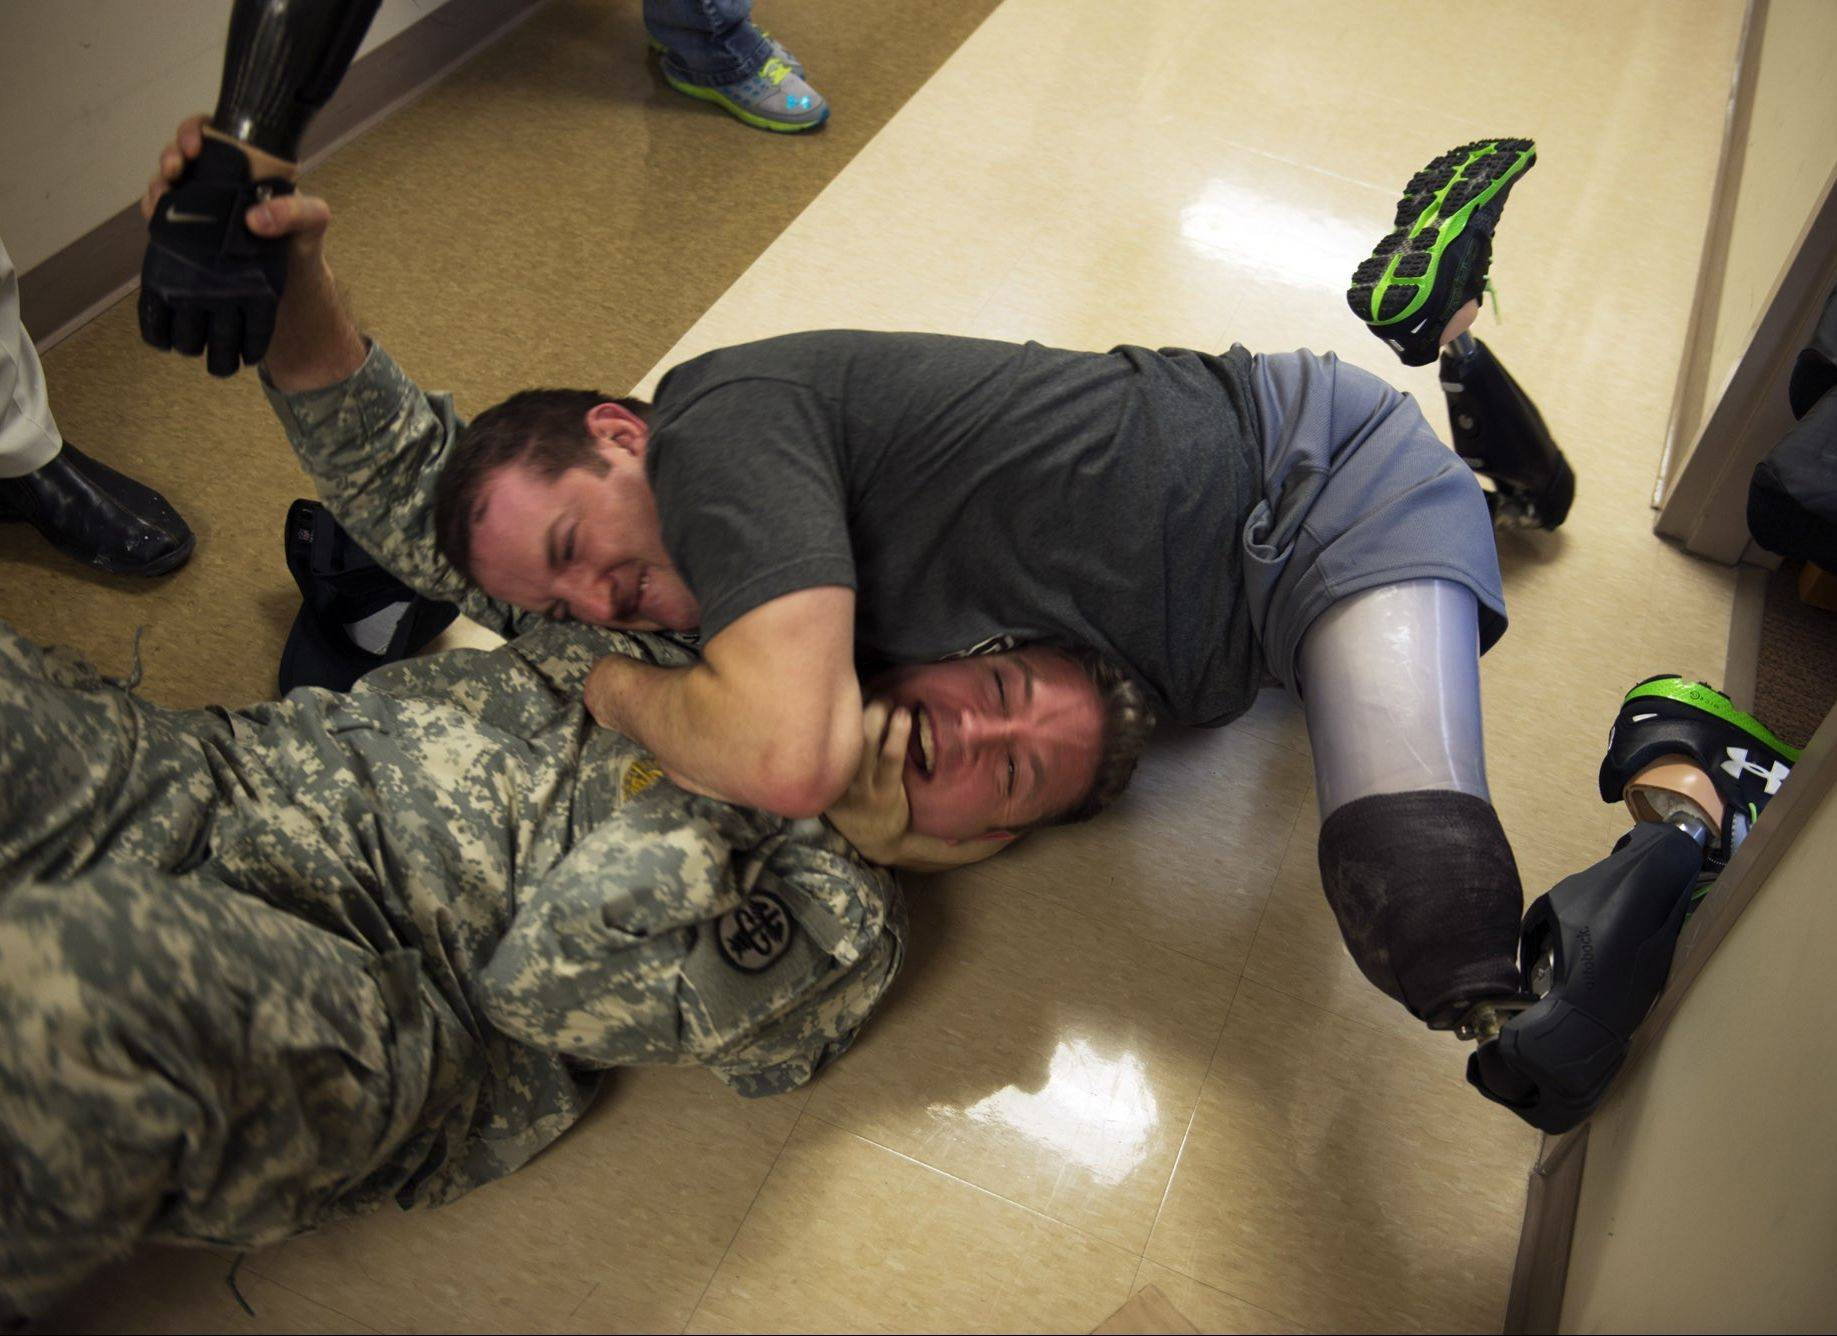 Army occupational therapist Captain Erik S. Johnson, left, and Sergeant Monte Bernardo, who was critically injured by an IED in Afghanistan, wrestle each other. The two men have become good friends during the long months of rehabilitation.